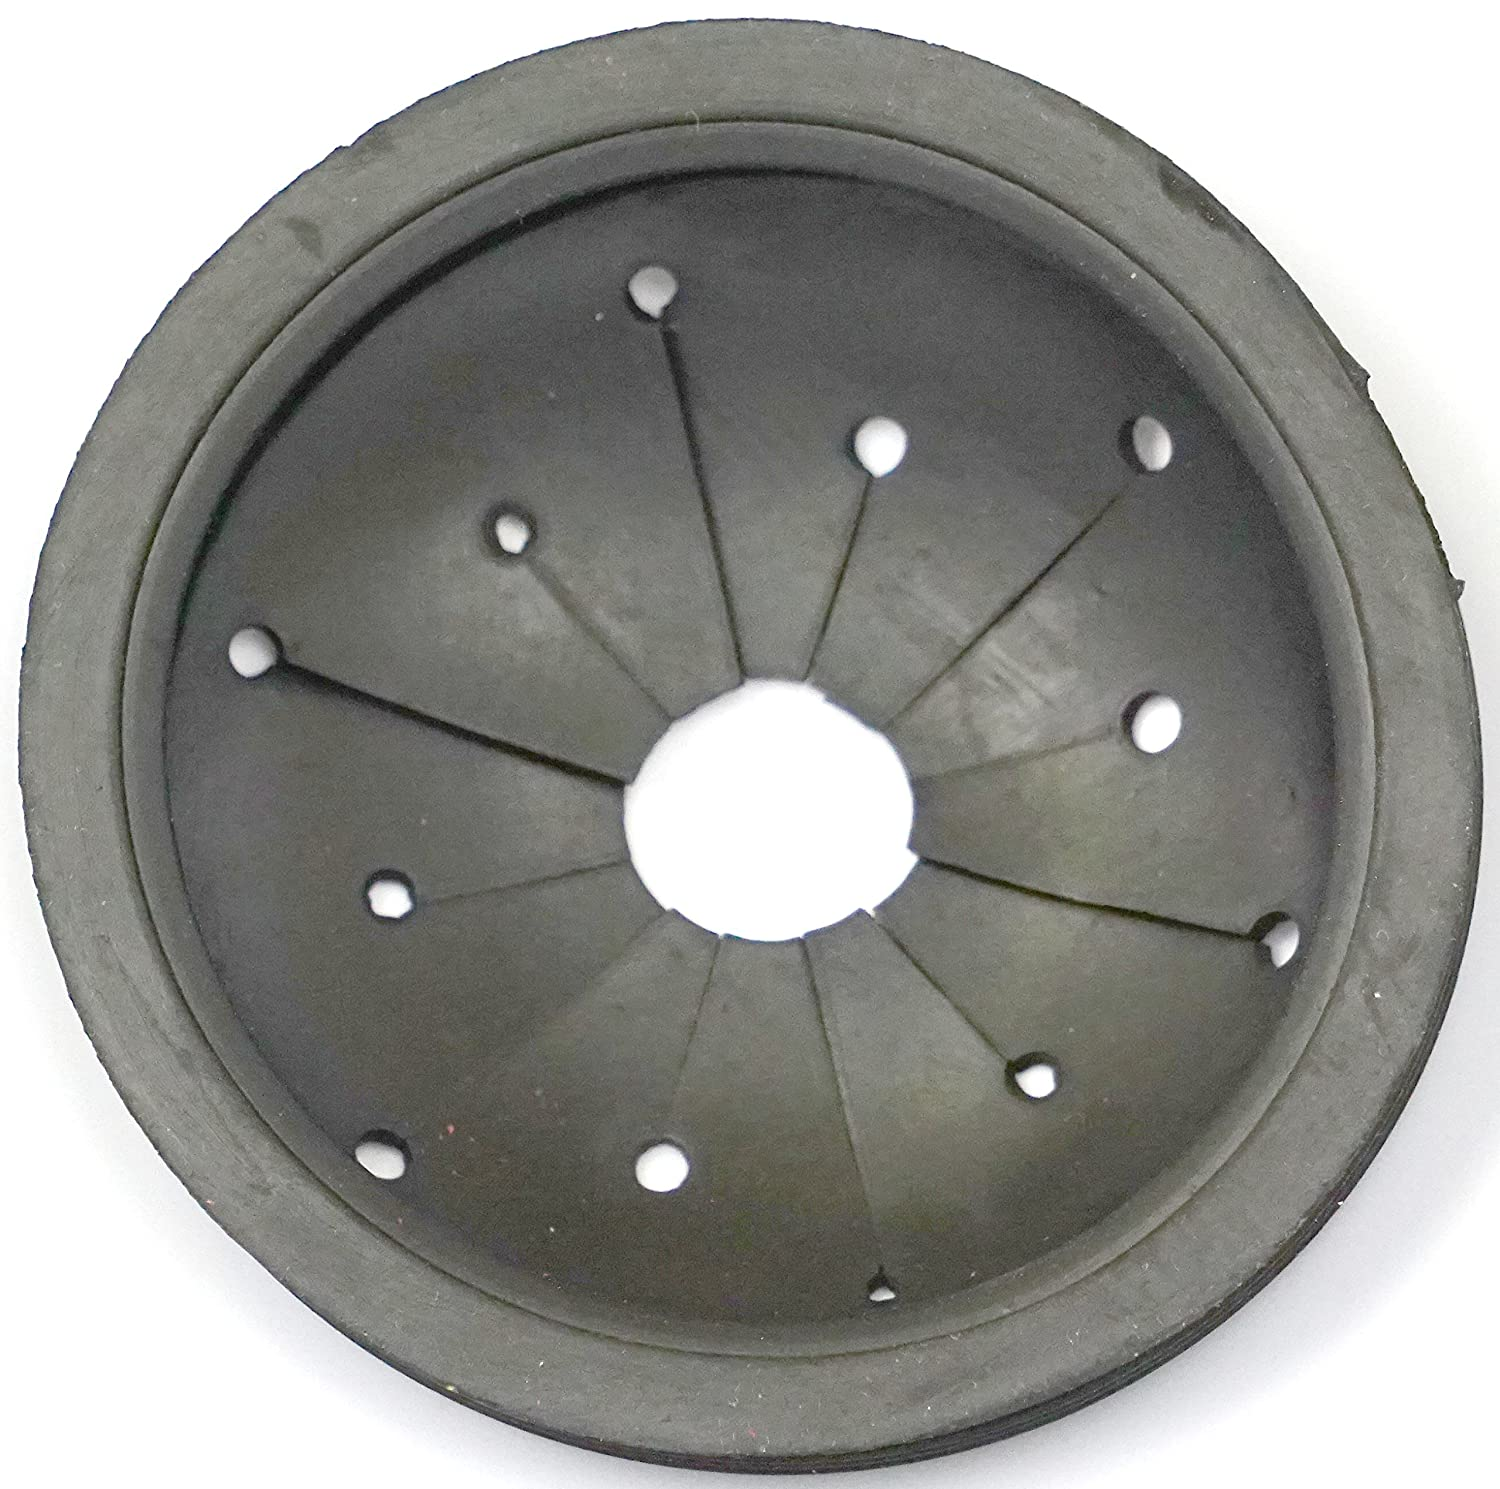 LASCO 39-9057 Whirlaway and Sinkmaster Disposal Replacement Splashguard